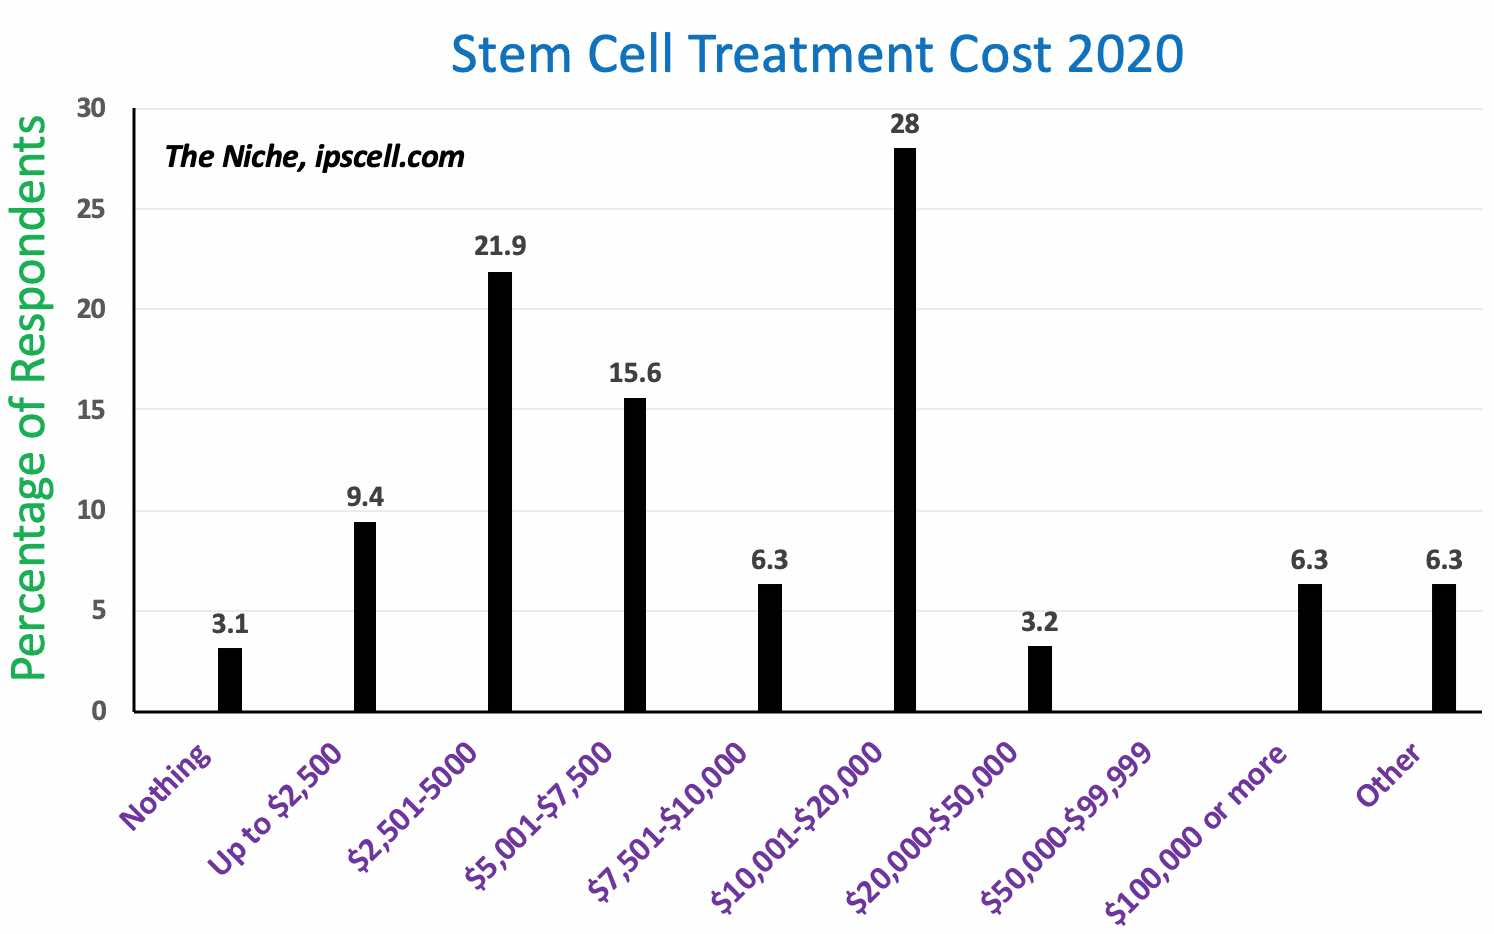 How much do stem cells cost in 2020?